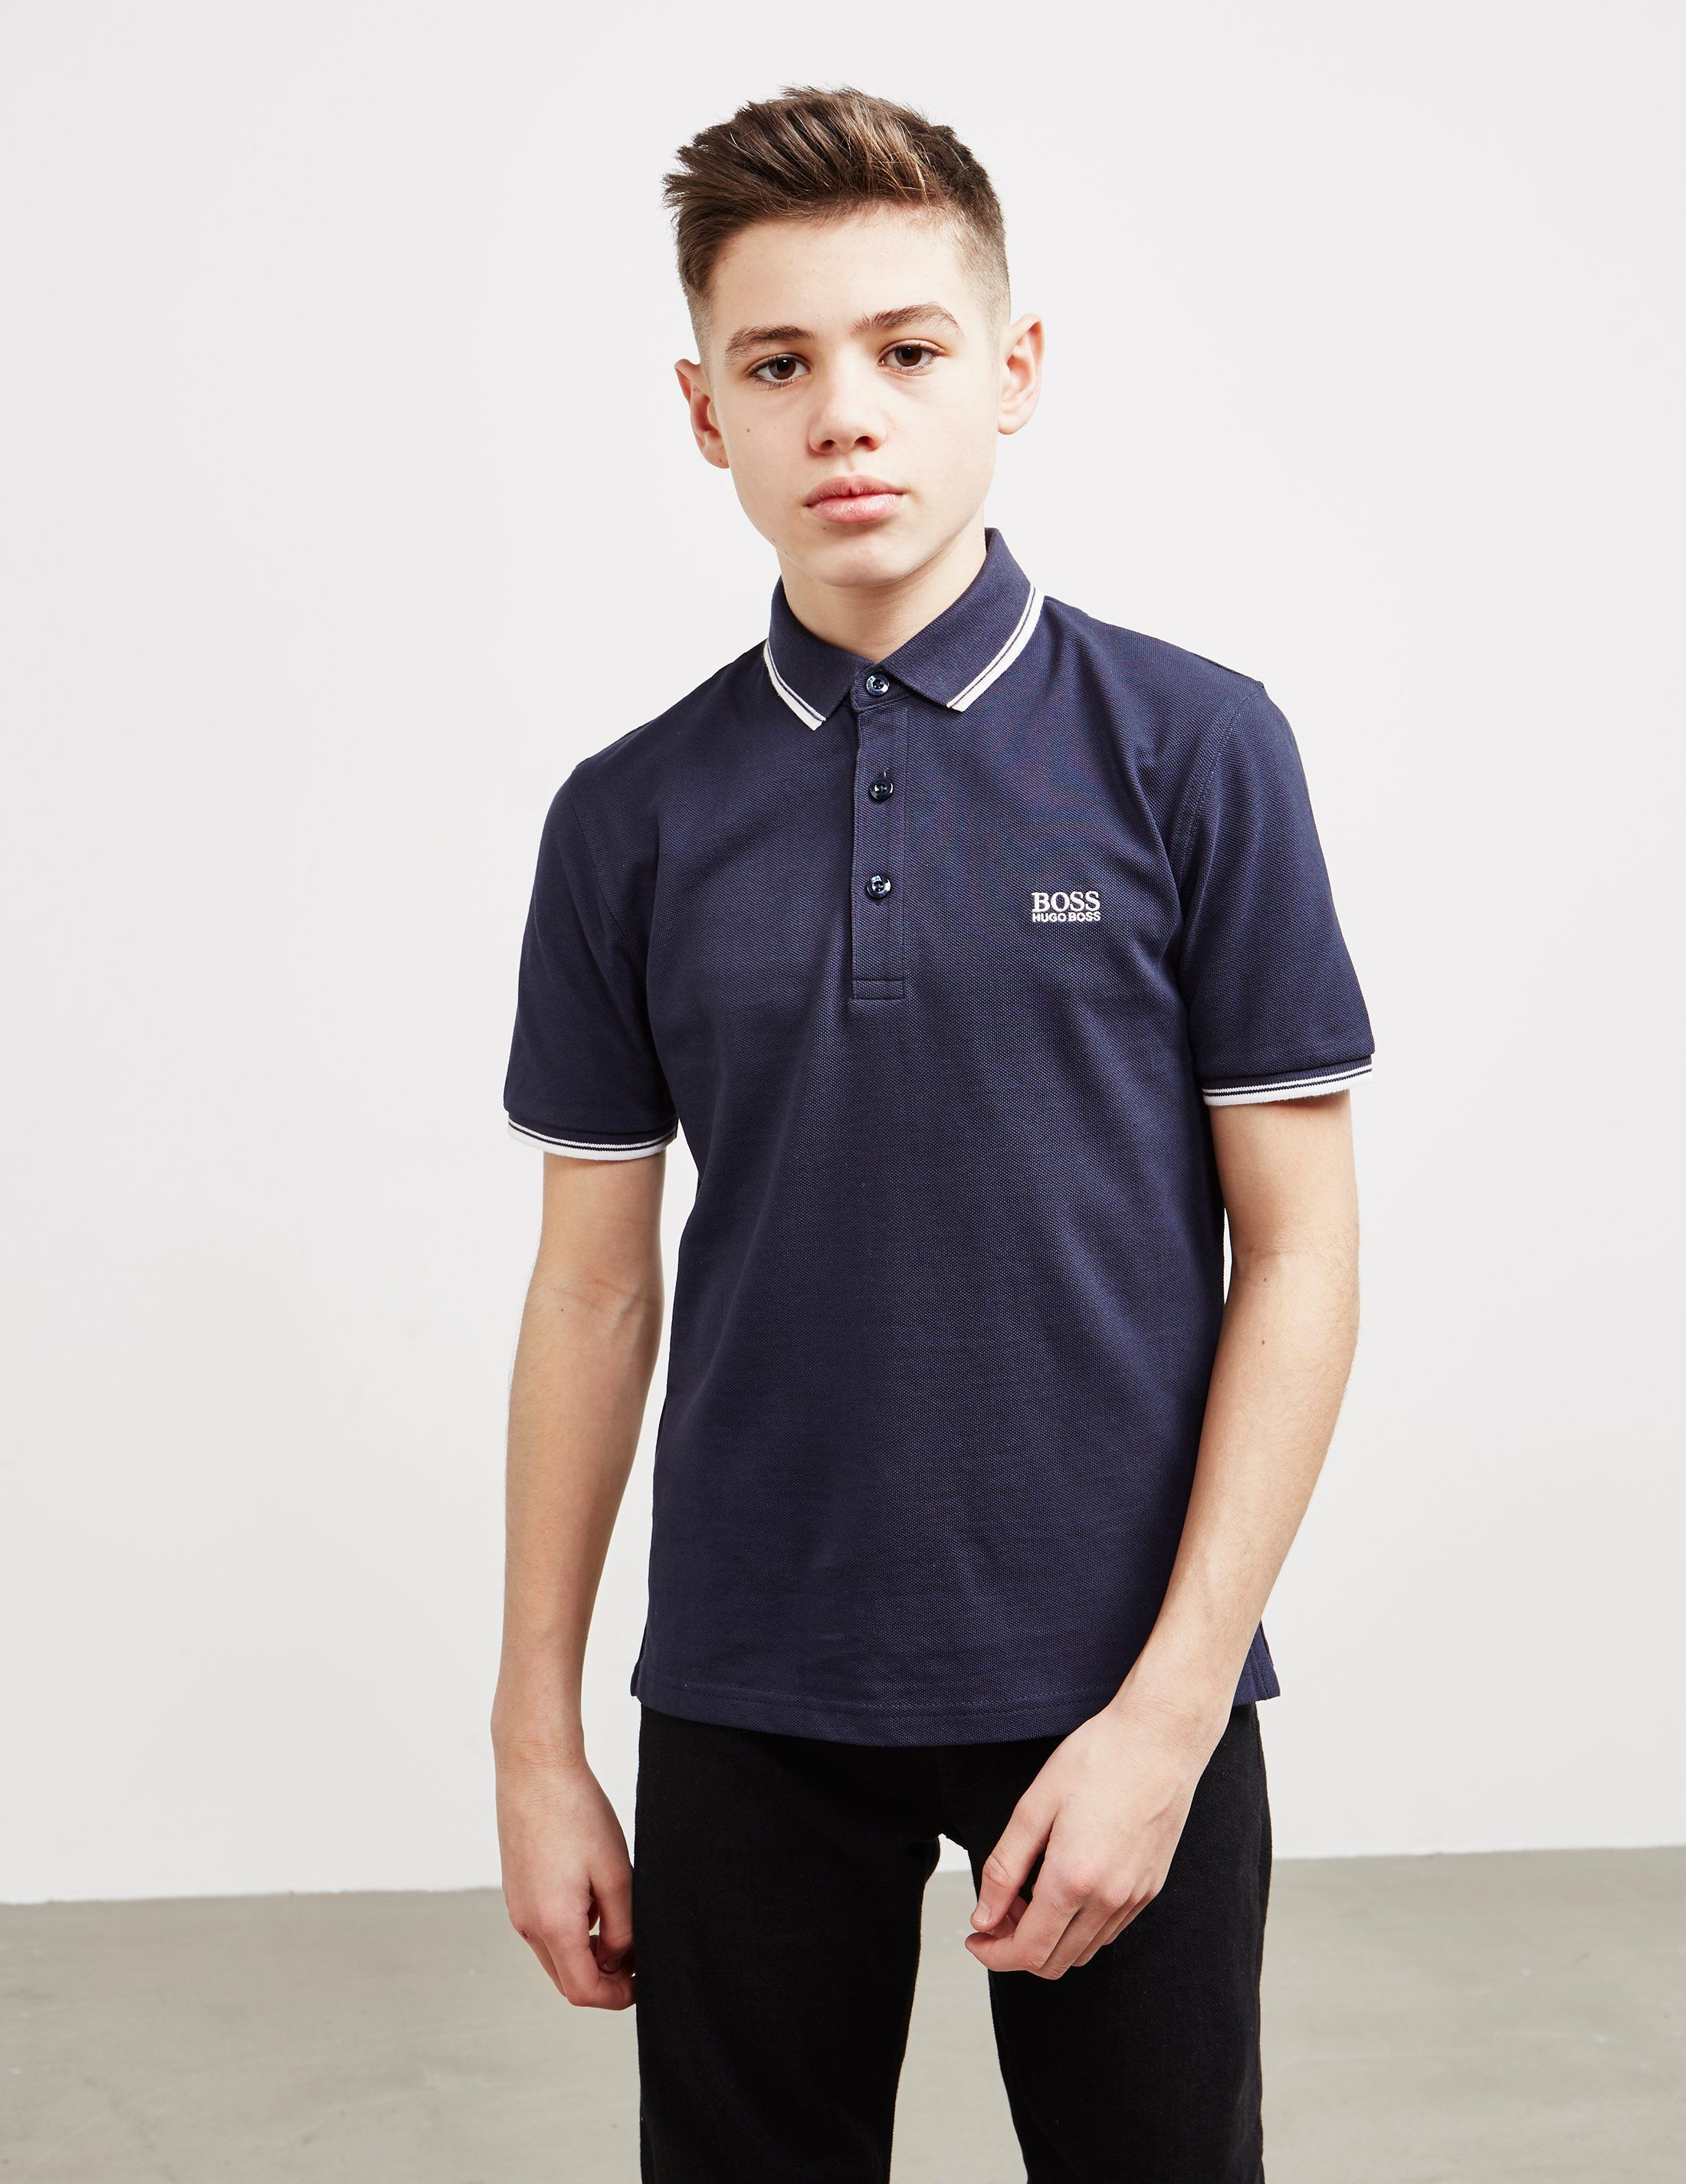 BOSS Small Logo Short Sleeve Polo Shirt